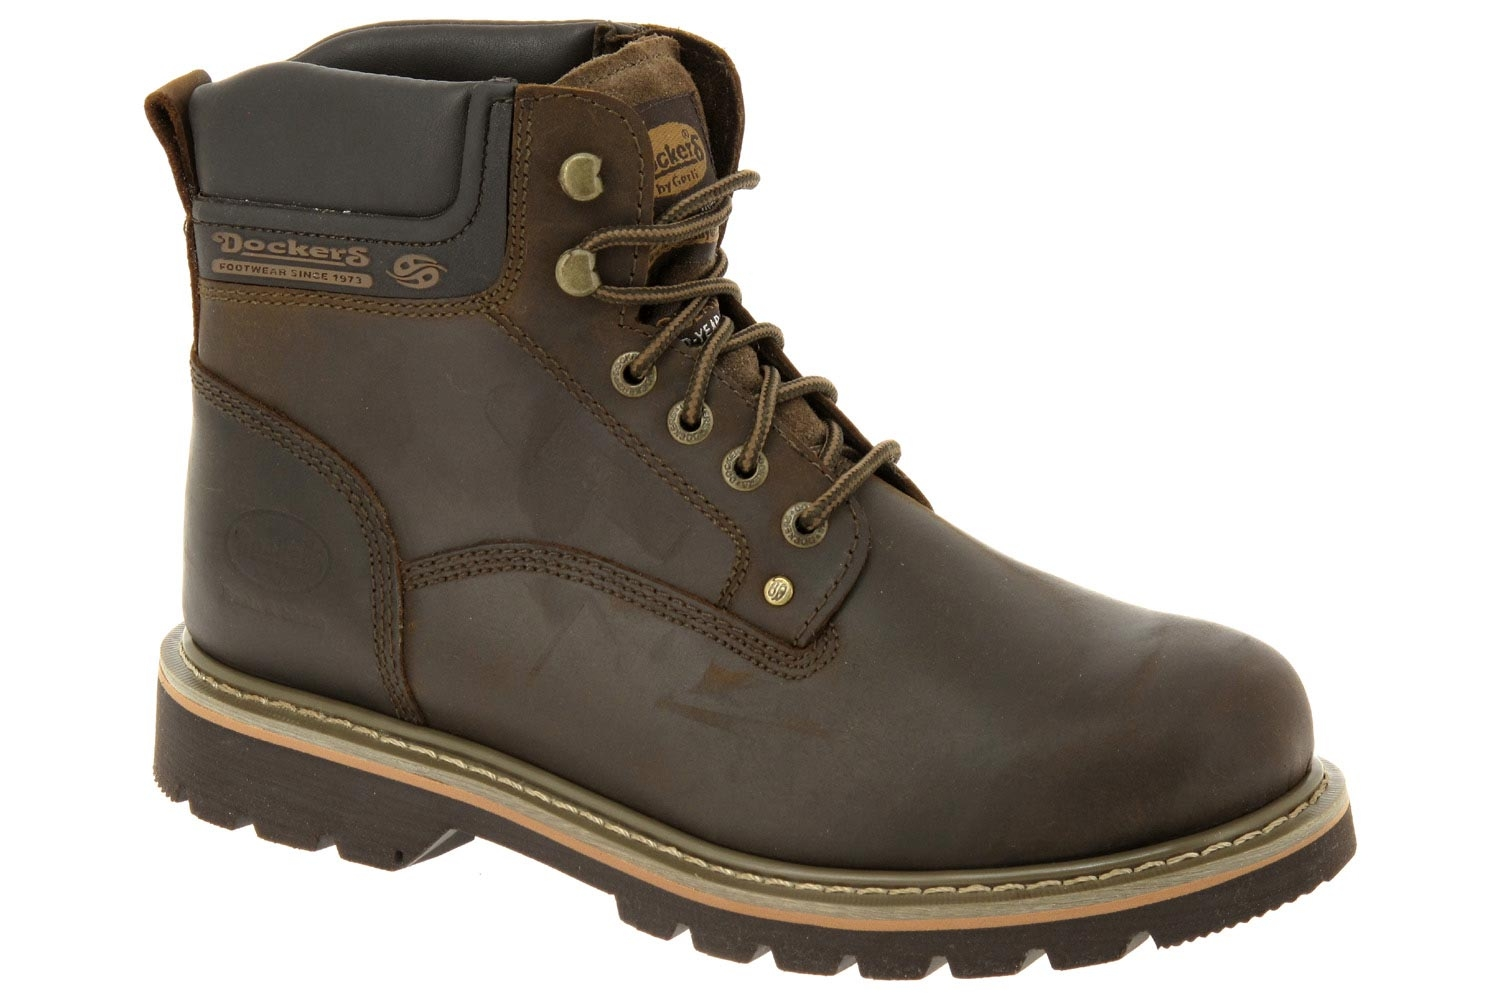 bottines / boots 23da004 homme dockers 23da004 OR7jSp3jj7